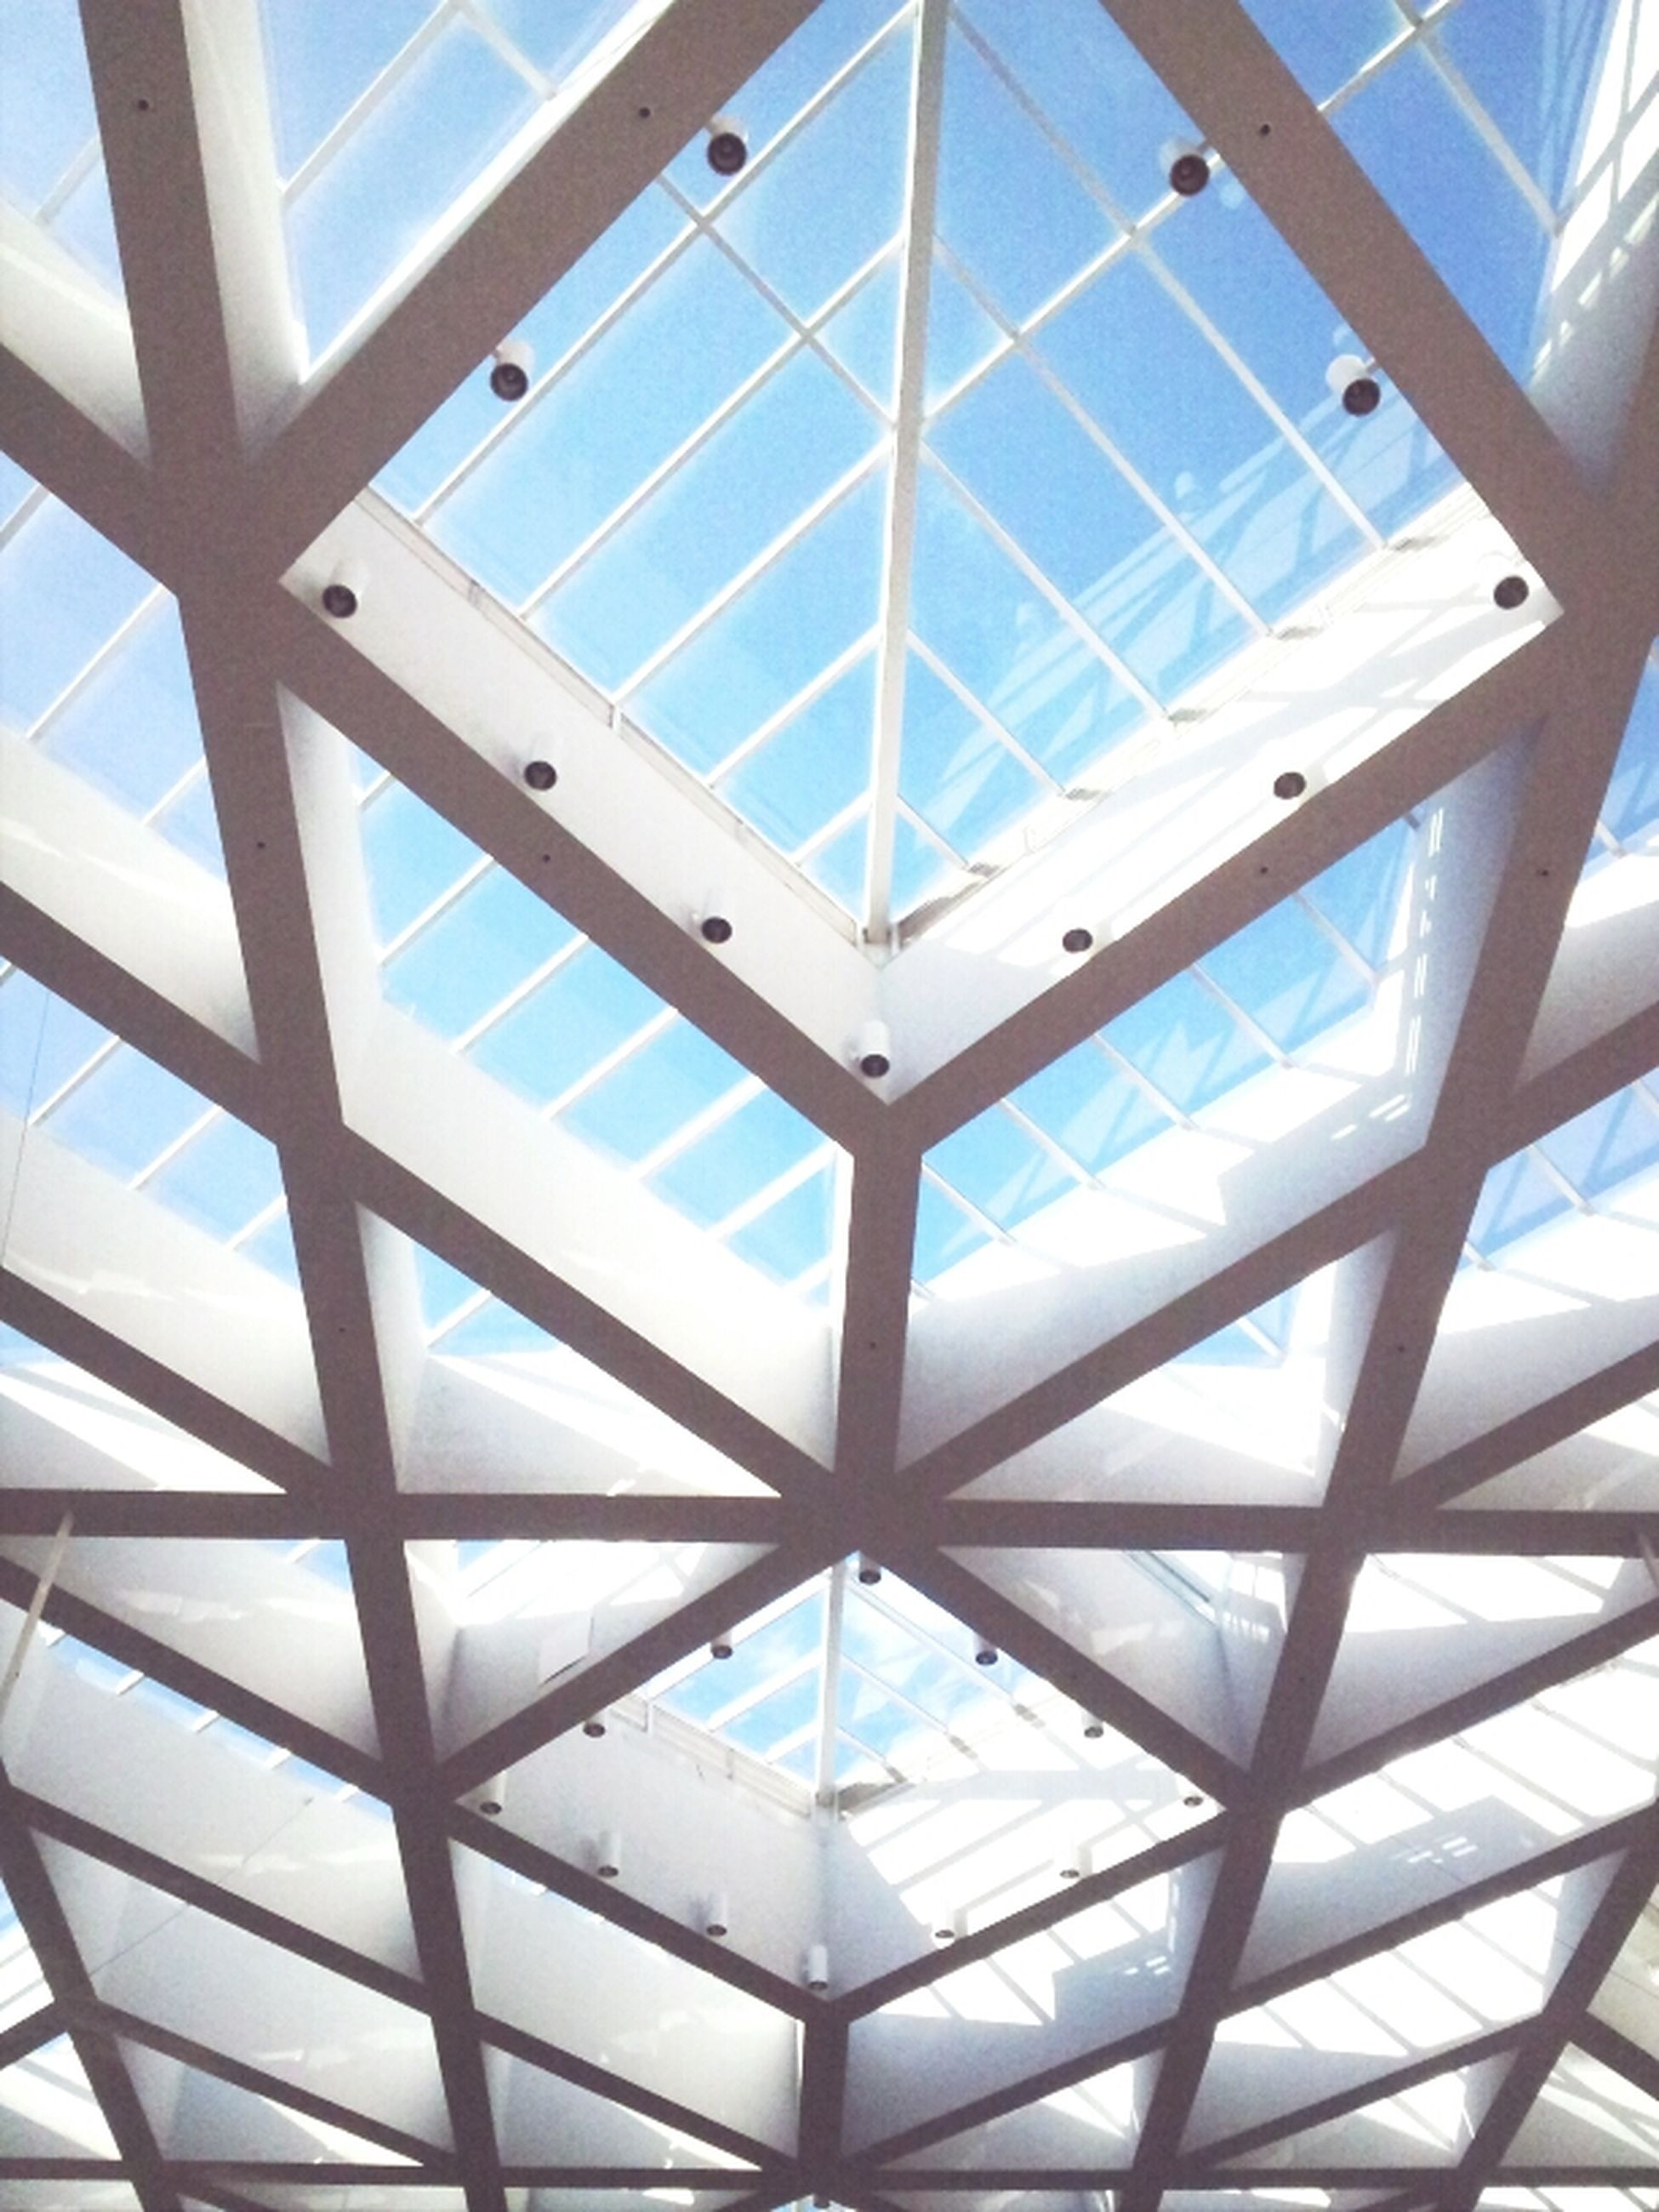 indoors, architecture, low angle view, ceiling, glass - material, built structure, pattern, modern, skylight, architectural feature, geometric shape, transparent, full frame, design, window, directly below, glass, backgrounds, day, sky